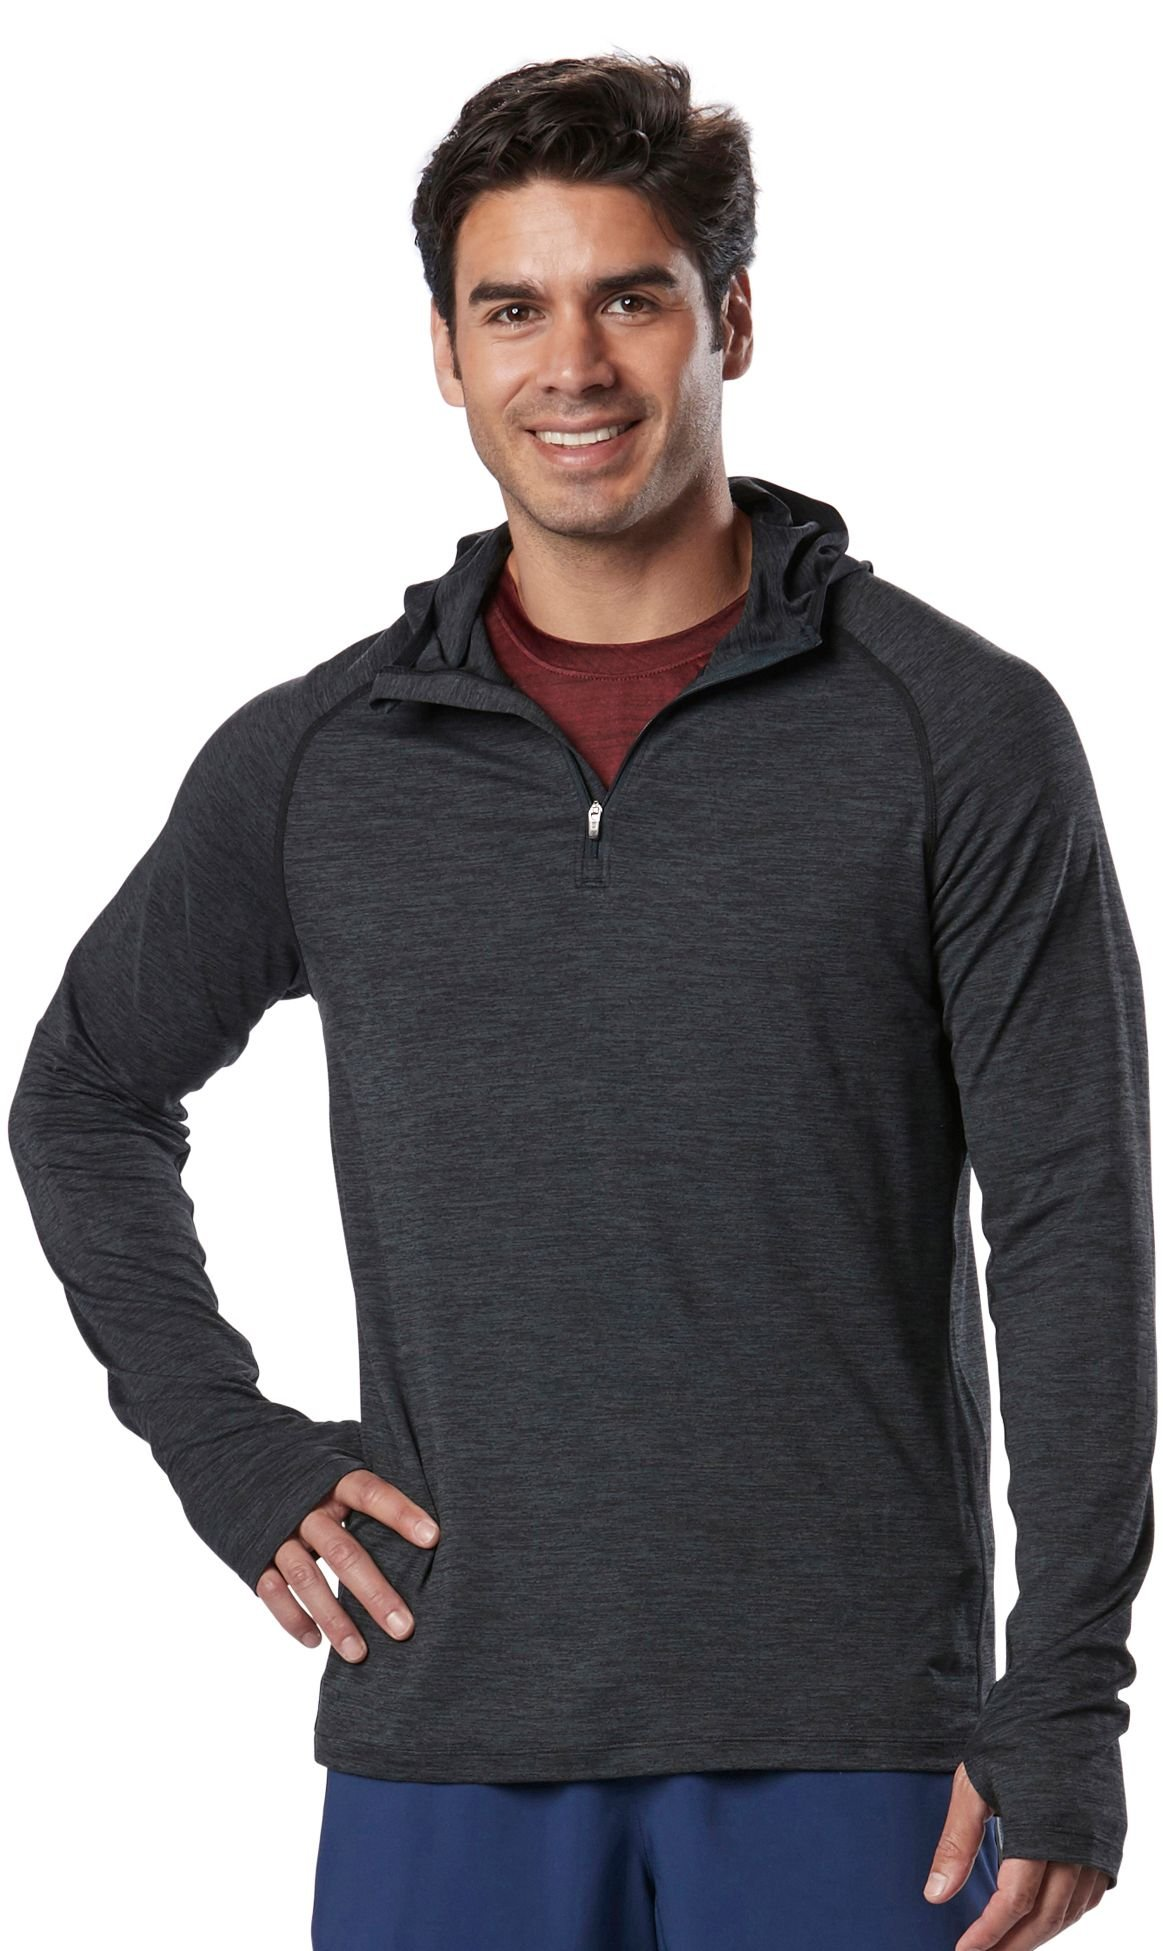 R-Gear Men's Quarter Zip Active Pullover Hoodie with Thumbholes   in-The-Zone